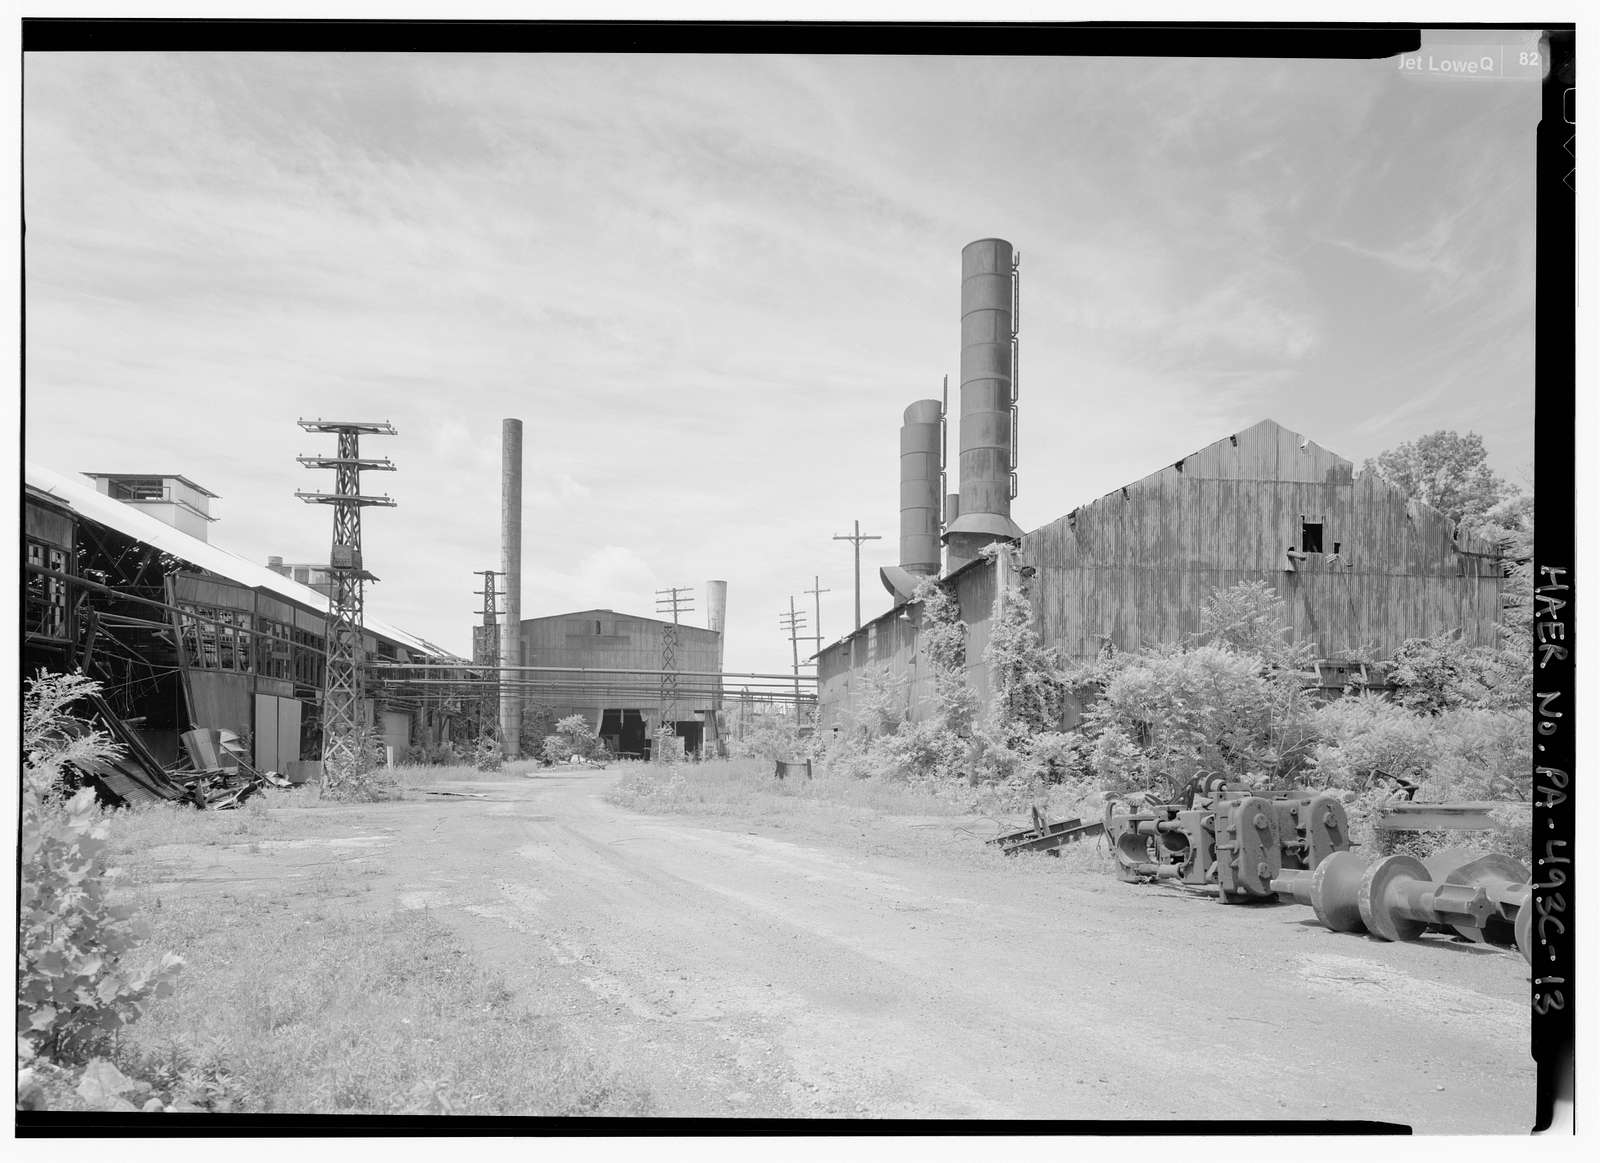 Phoenix Iron Company, Rolling Mill, North of French Creek, west of Fairview Avenue, Phoenixville, Chester County, PA